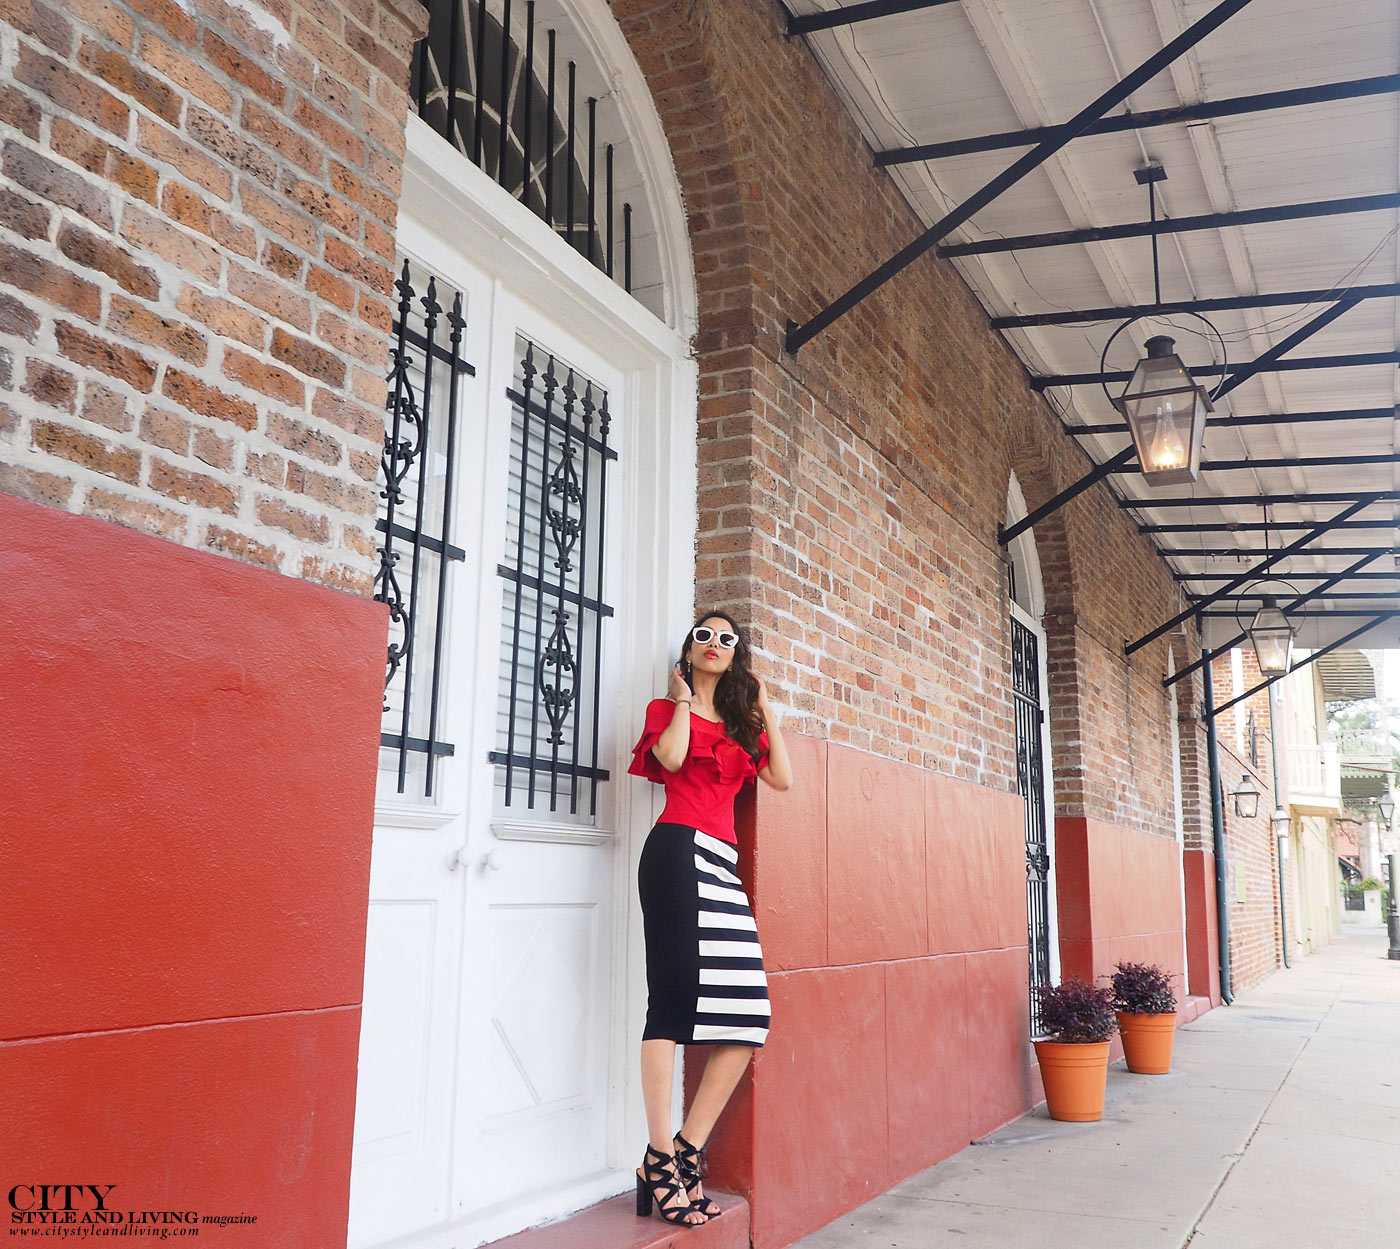 City style and living magazine The Editors Notebook style fashion blogger Shivana Maharaj french quarter new orleans ruffle top and striped skirt architecture closeup